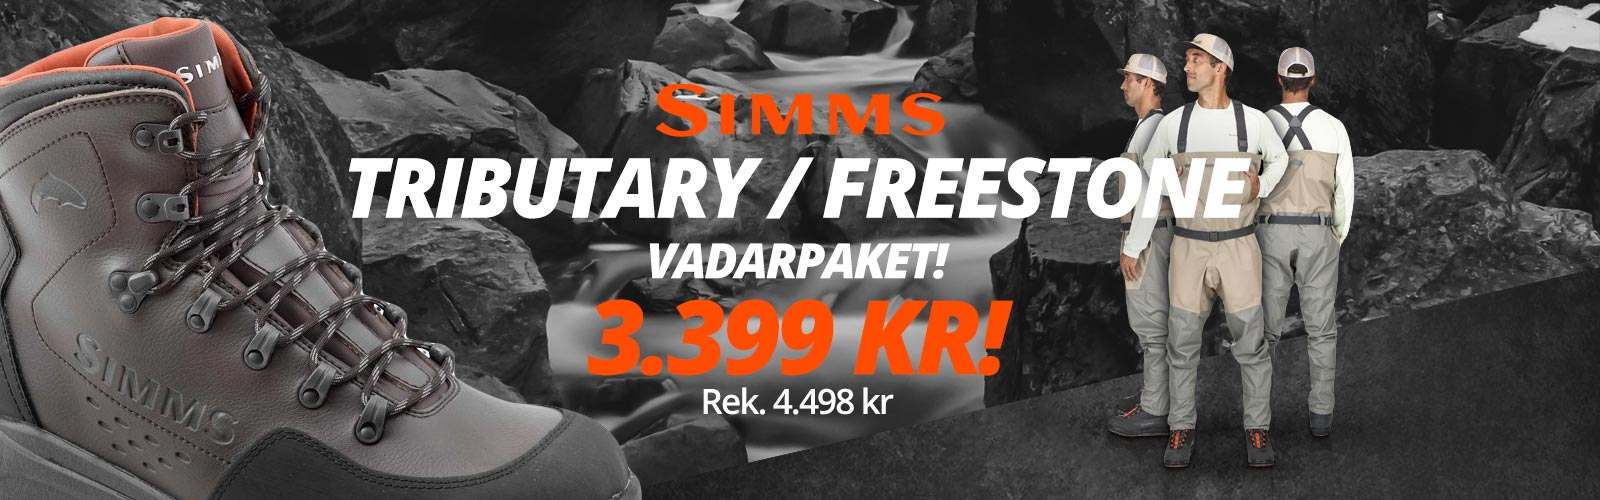 Simms tributary freestone vadarpaket